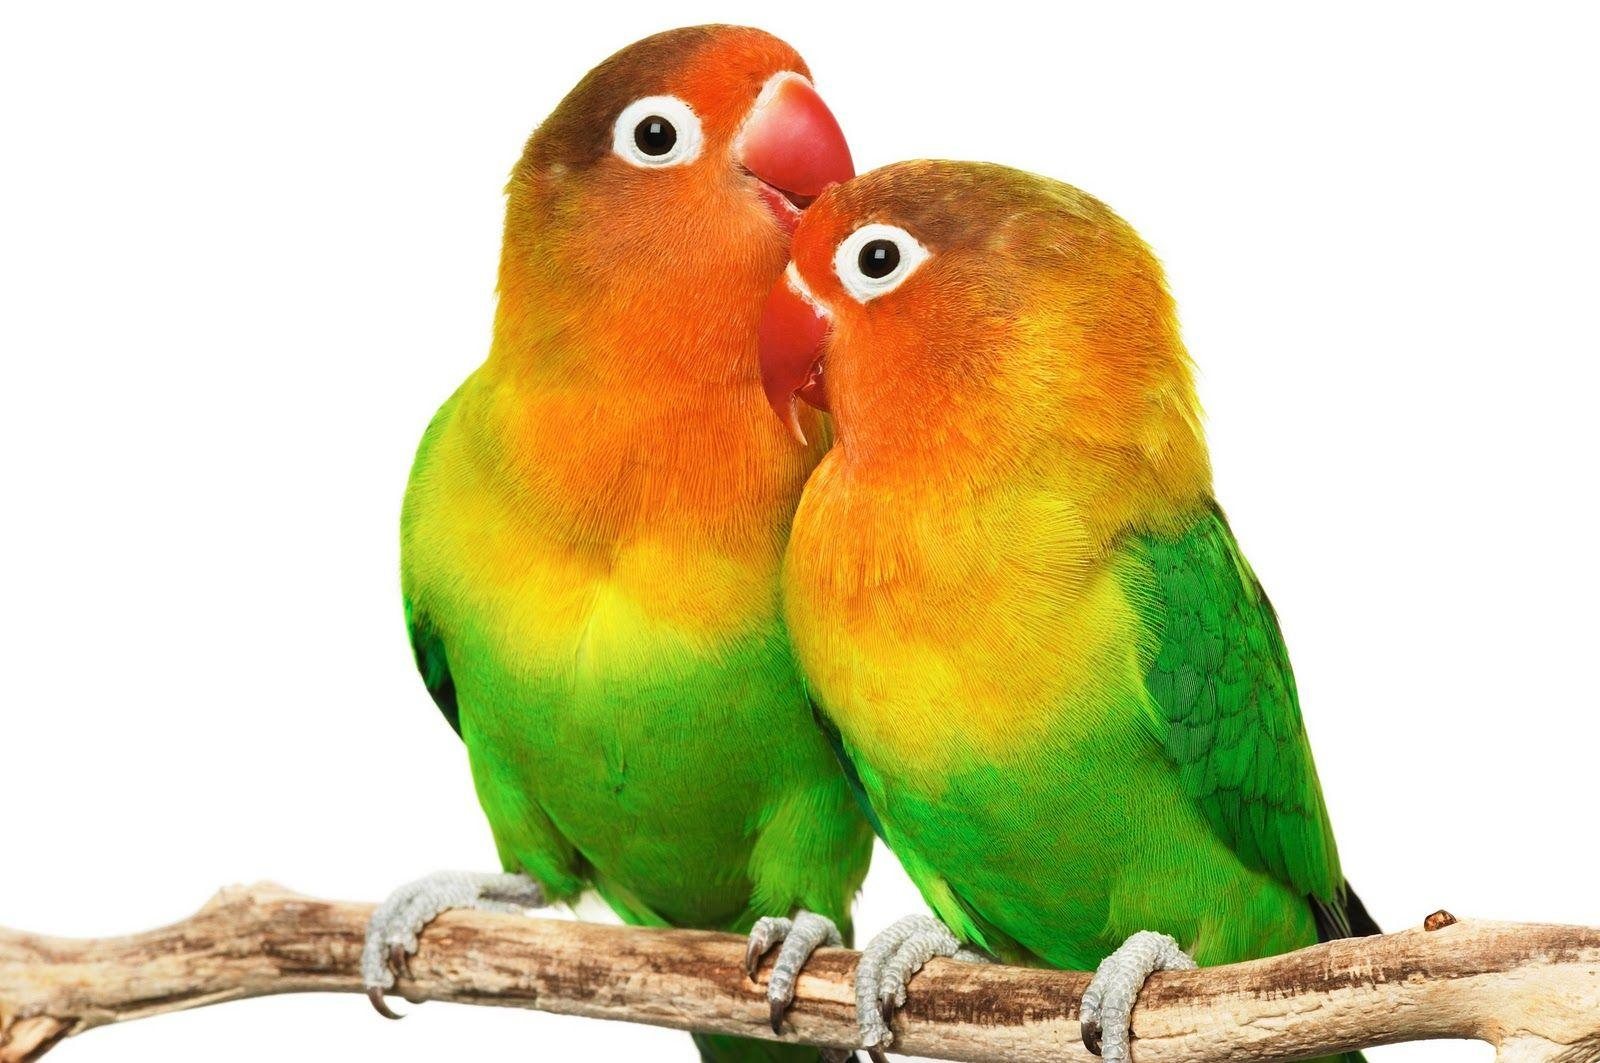 Love Birds Wallpaper In Hd : Love Bird Wallpapers - Wallpaper cave